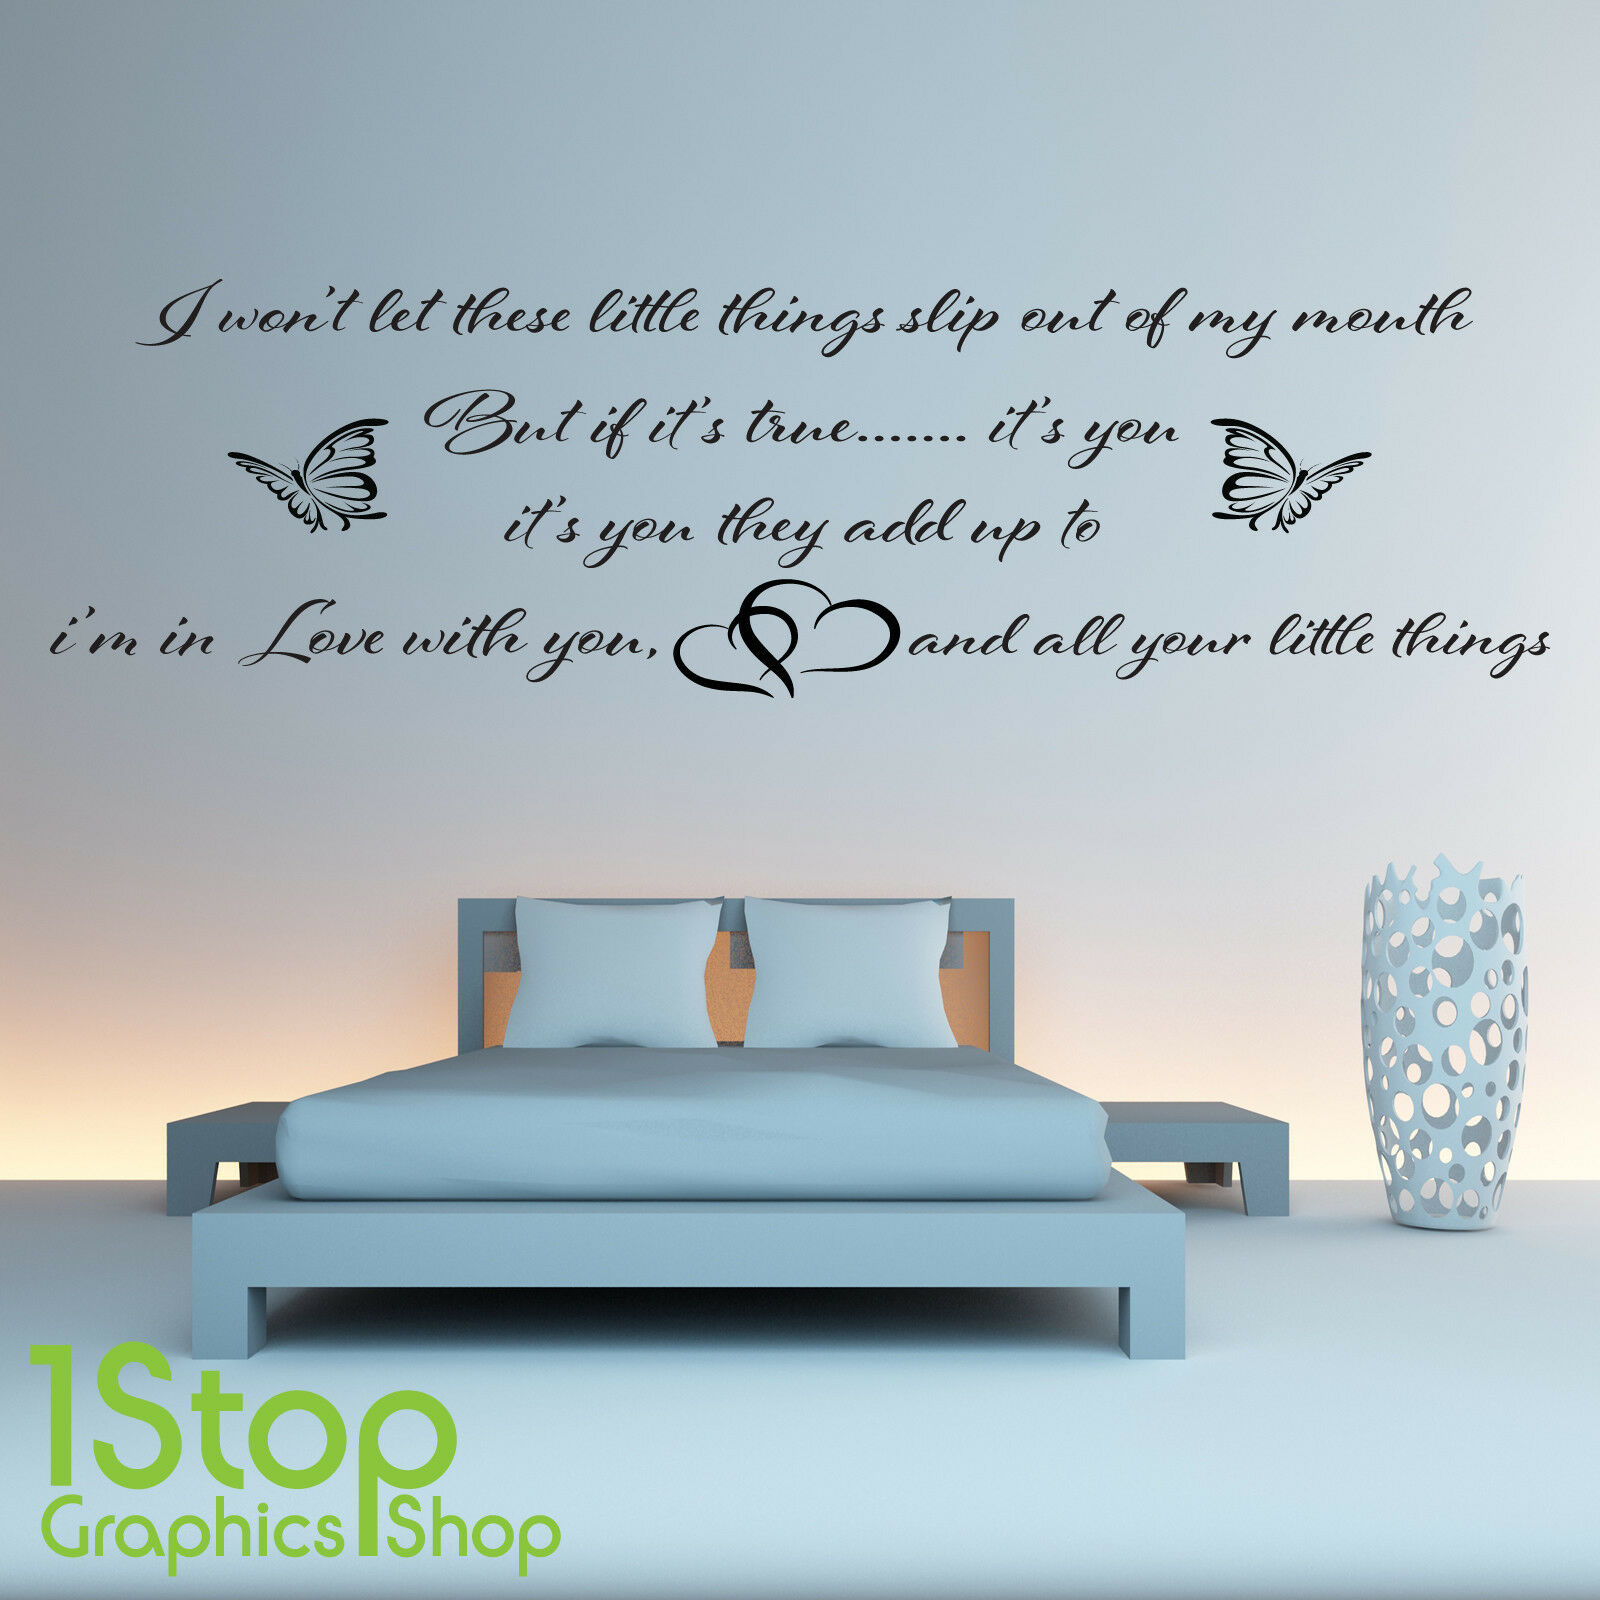 One Direction Wall Sticker Quote Bedroom Harry Styles Wall Art Decal X229